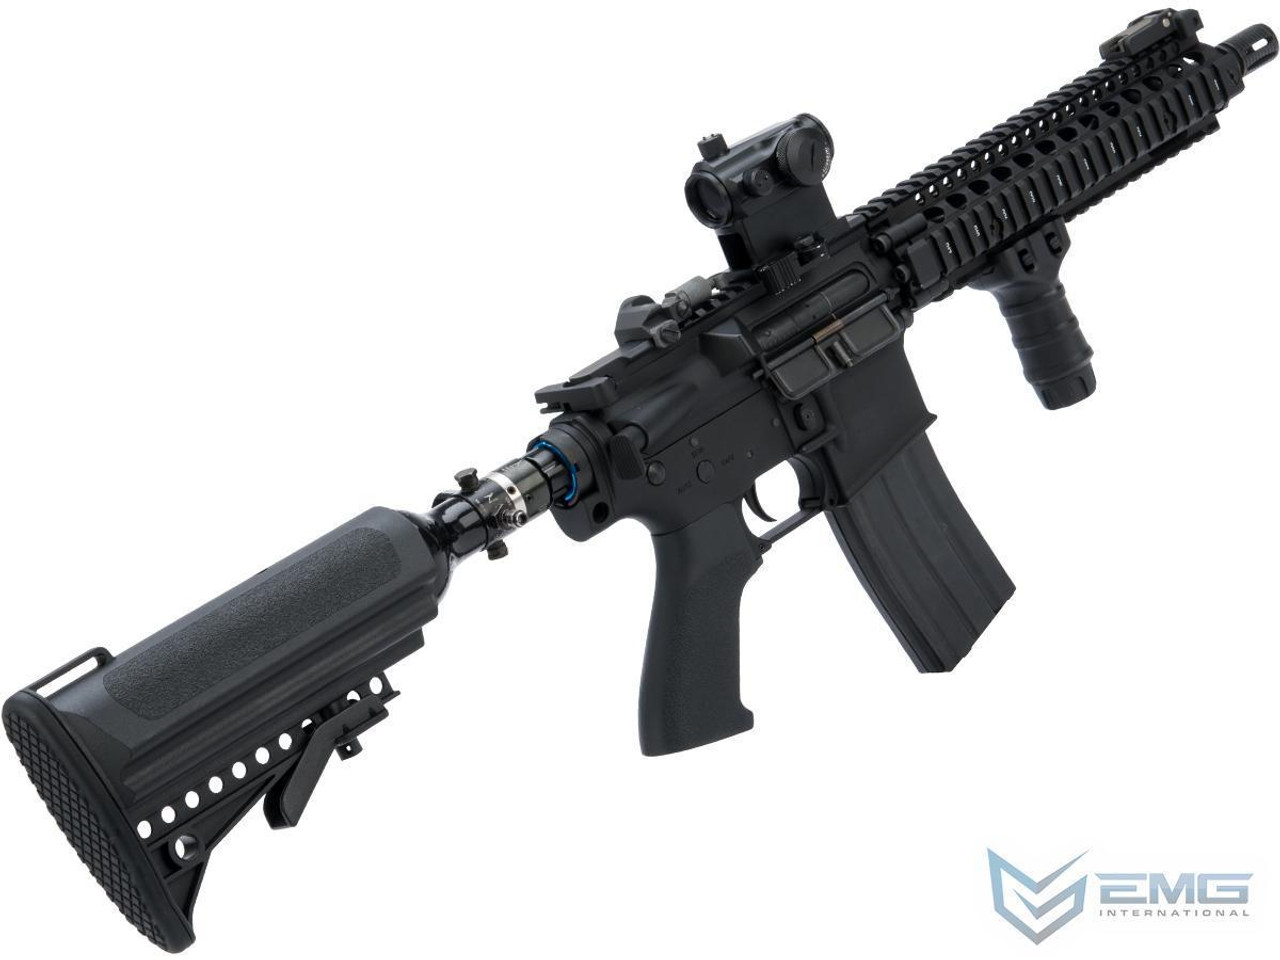 EMG / Polarstar Daniel Defense MK18 R3 HPA Powered Airsoft Rifle